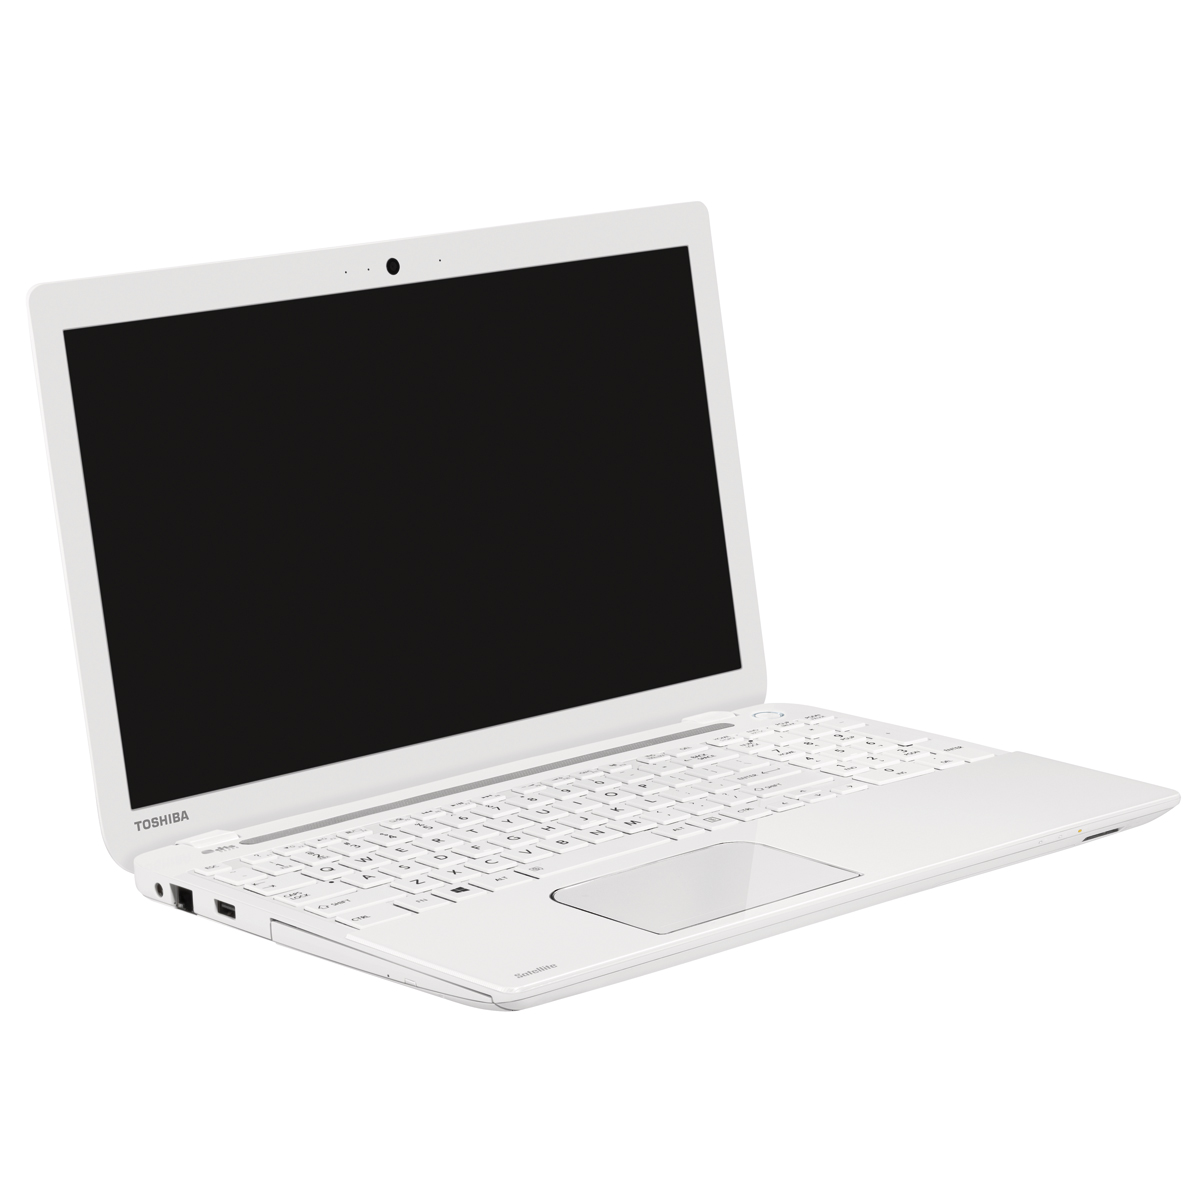 "PC portable Toshiba Satellite L50-A-1DG Intel Core i7-4700MQ 4 Go 750 Go 15.6"" LED NVIDIA GeForce GT 740M Graveur DVD Wi-Fi N/Bluetooth Webcam Windows 8.1 64 bits"